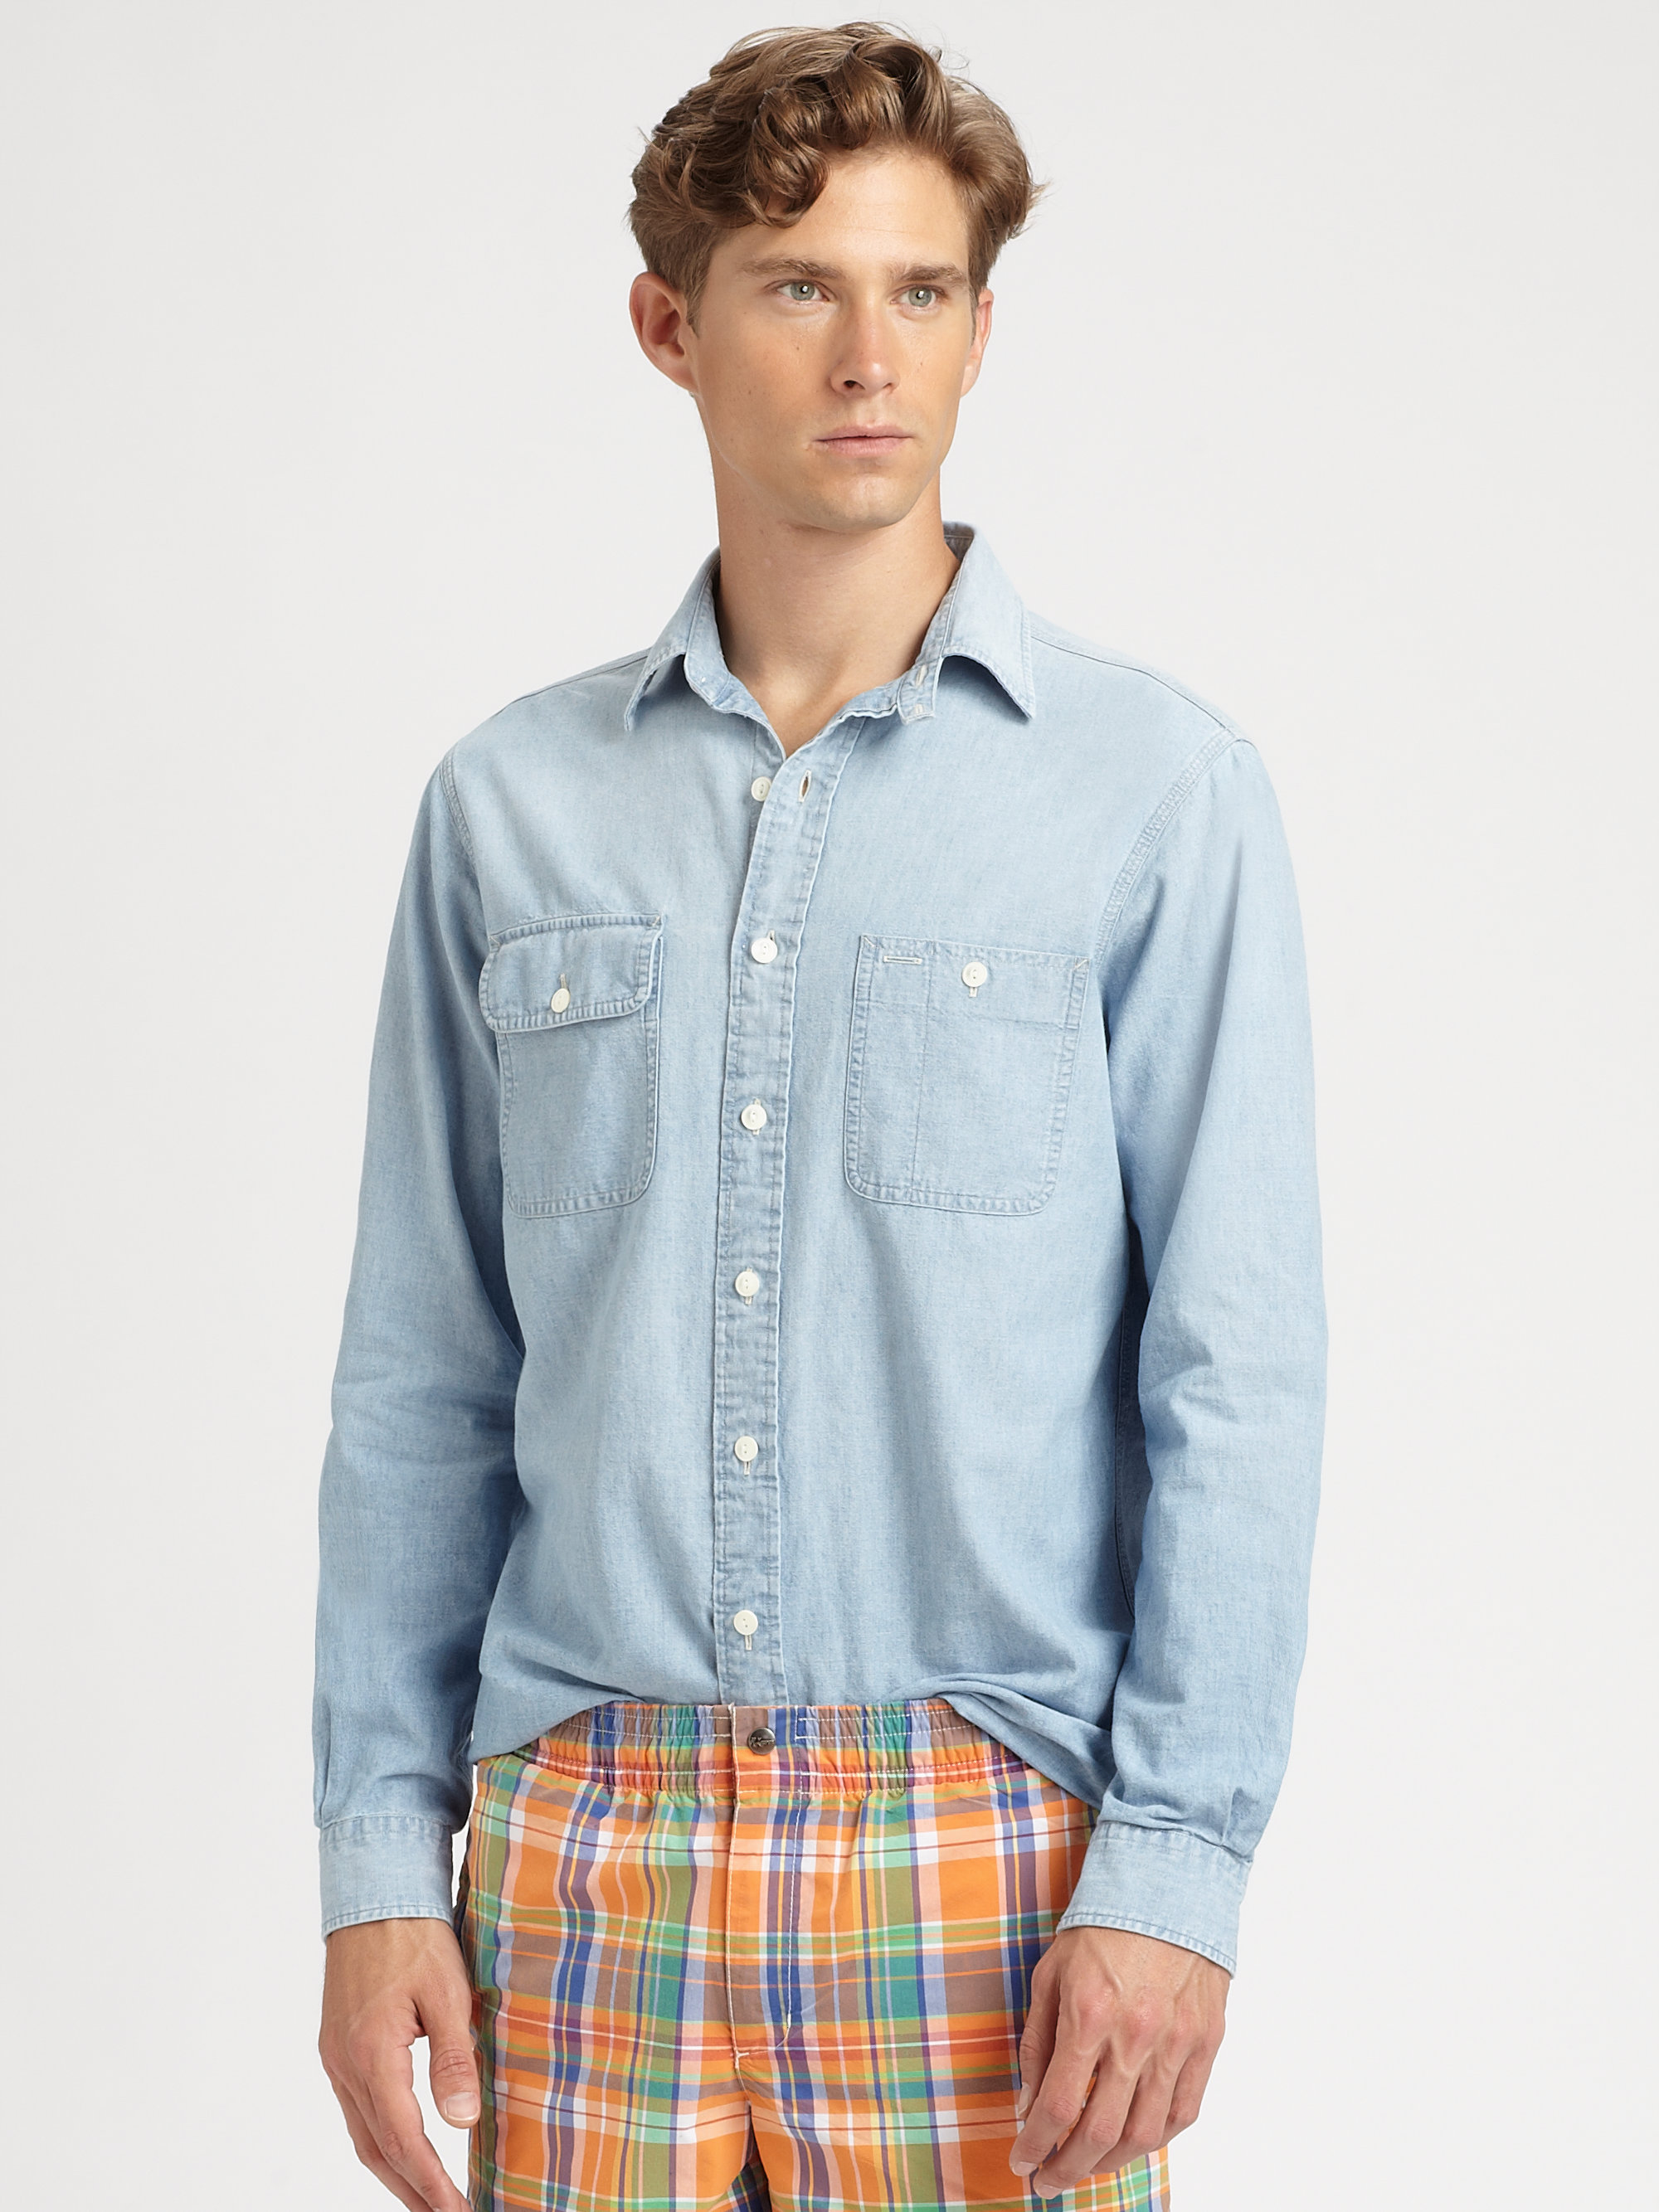 da36107f2b Lyst - Polo Ralph Lauren Customfit Denim Chambray Shirt in Blue for Men